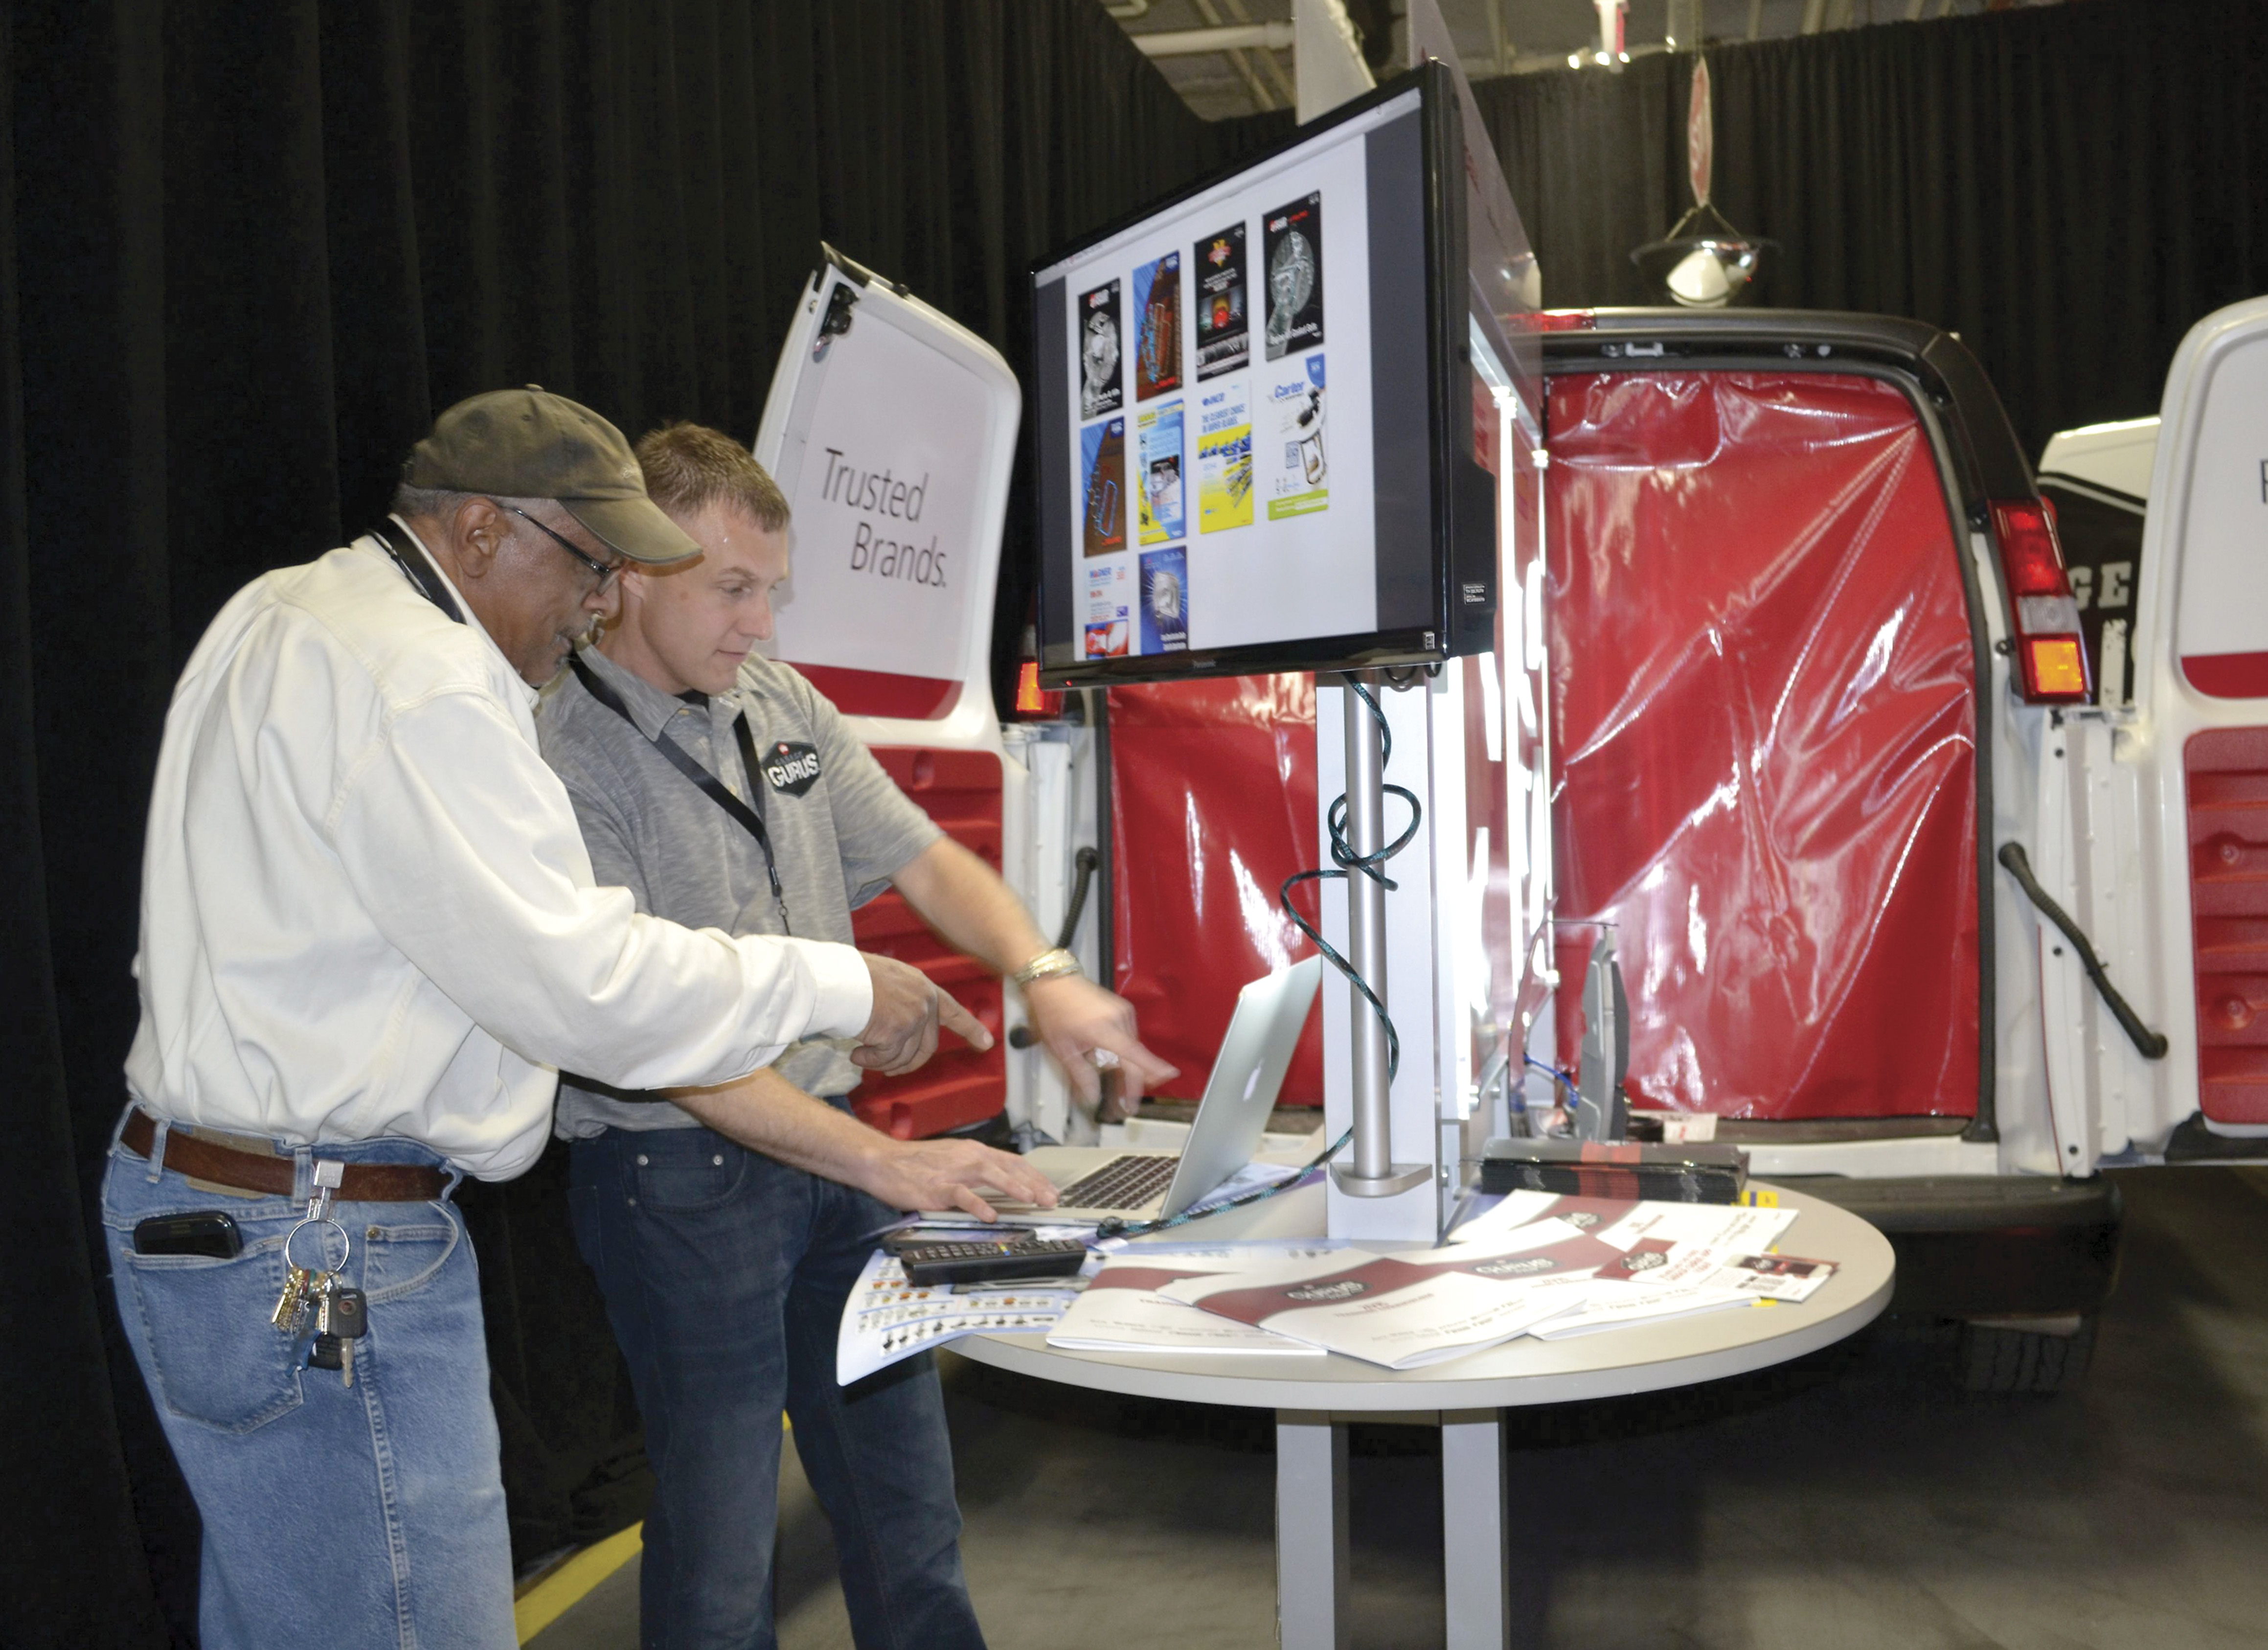 With Garage Gurus, Federal-Mogul takes training to the technician